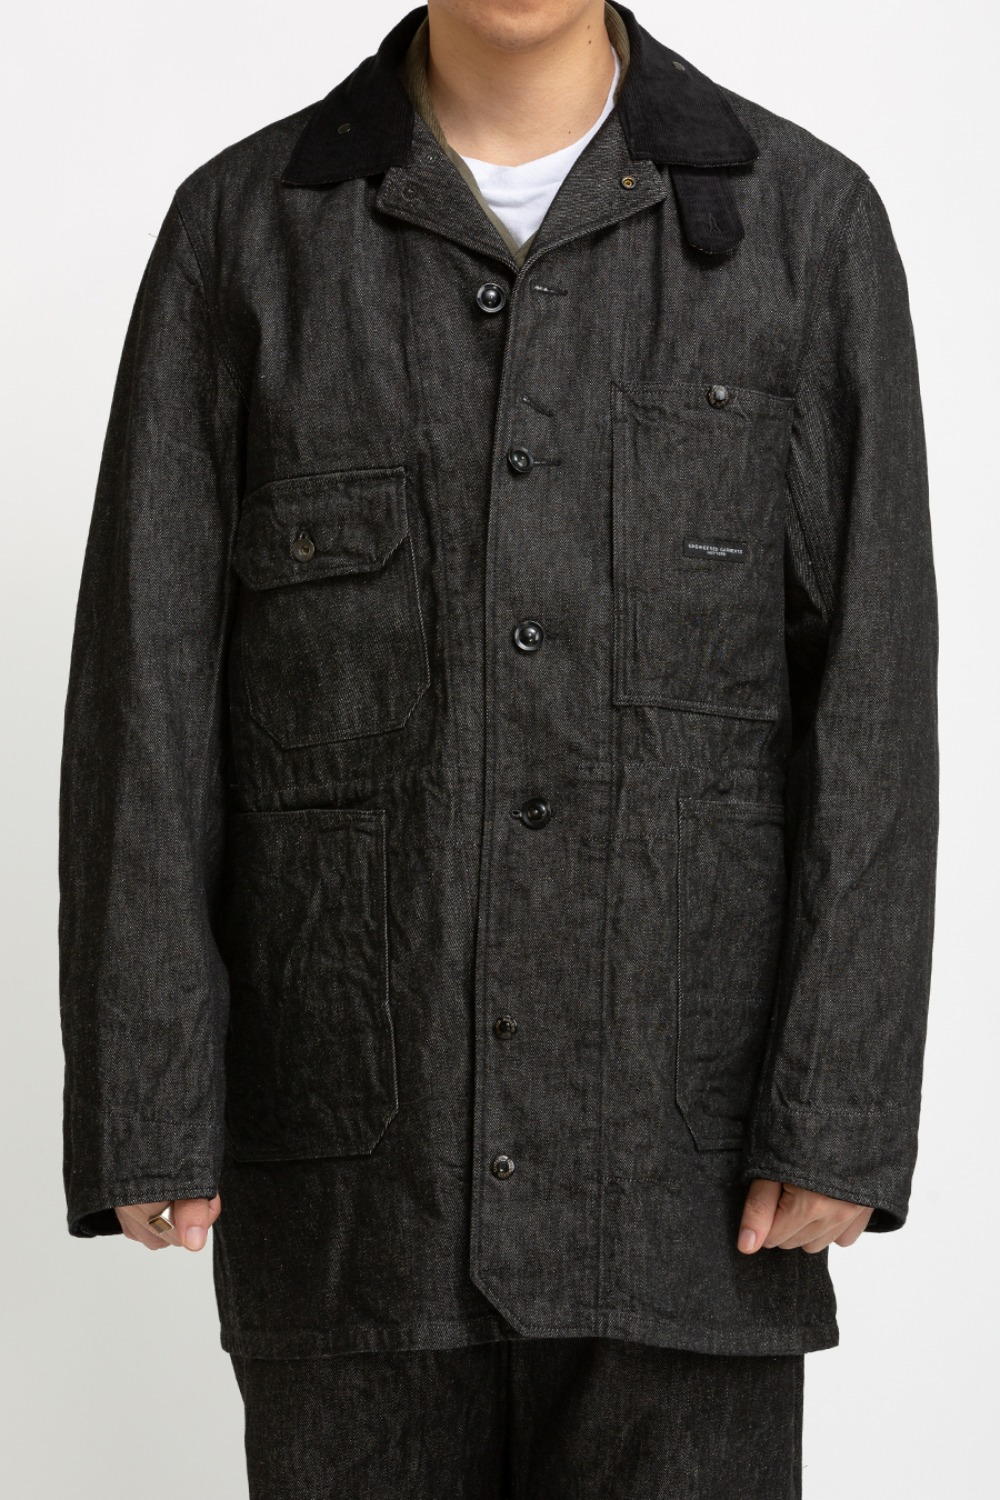 LONG LOGGER JACKET BLACK 12OZ CONE DENIM